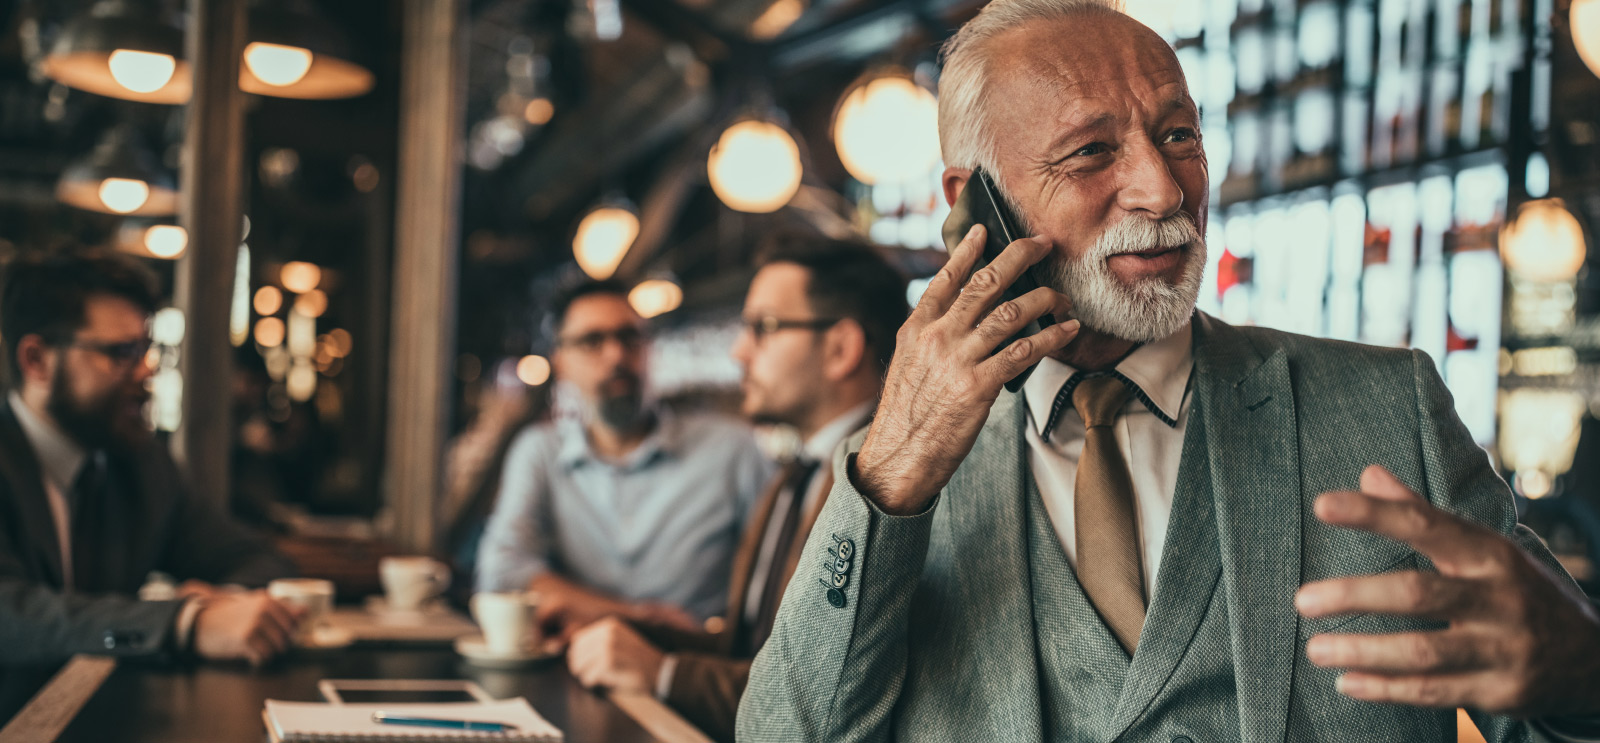 Business man taking phone call during meeting